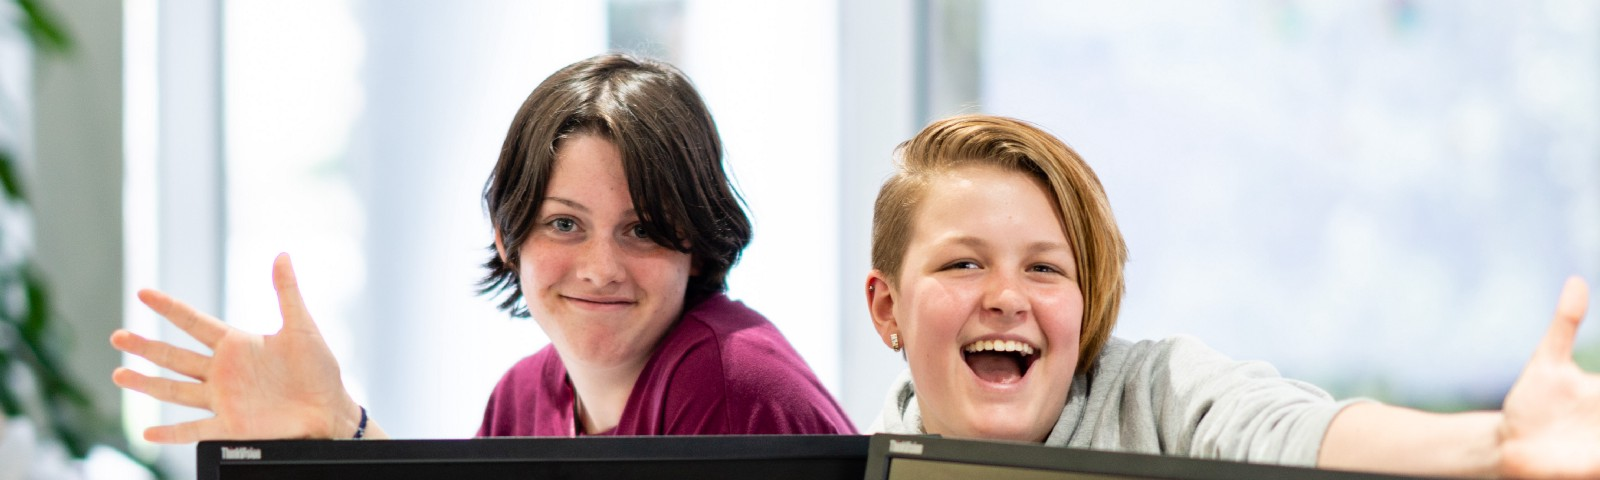 Two young people with their hands out smiling behind two laptop monitors